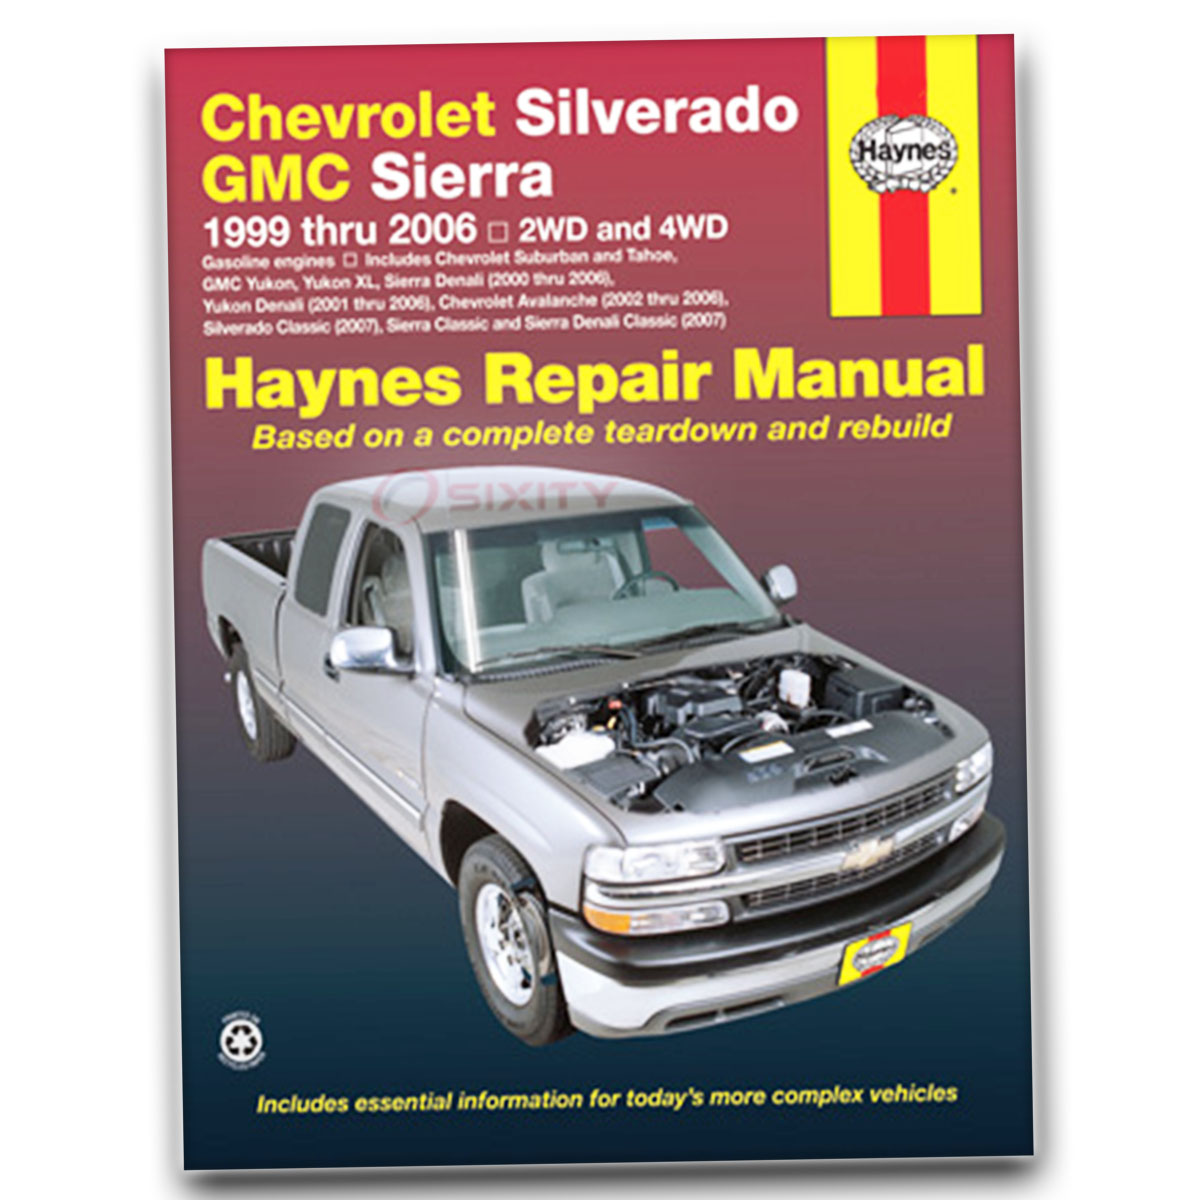 Haynes Repair Manual for Chevy Silverado 1500 HD LT Base LS Shop Service lb